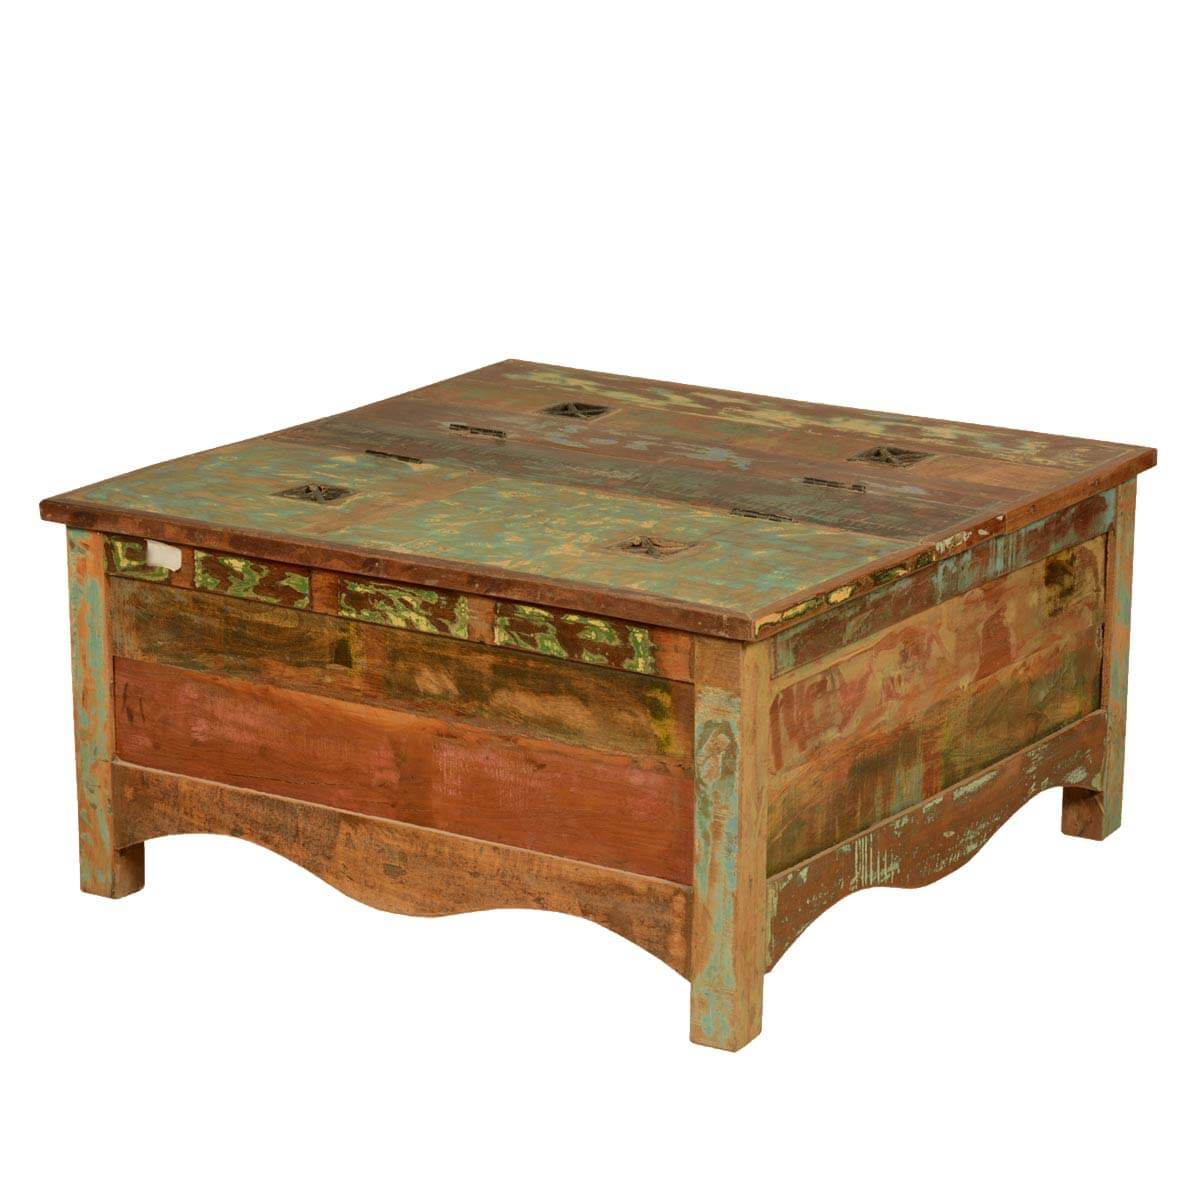 Rustic Reclaimed Wood 35 5 Square Double Top Coffee Table Chest